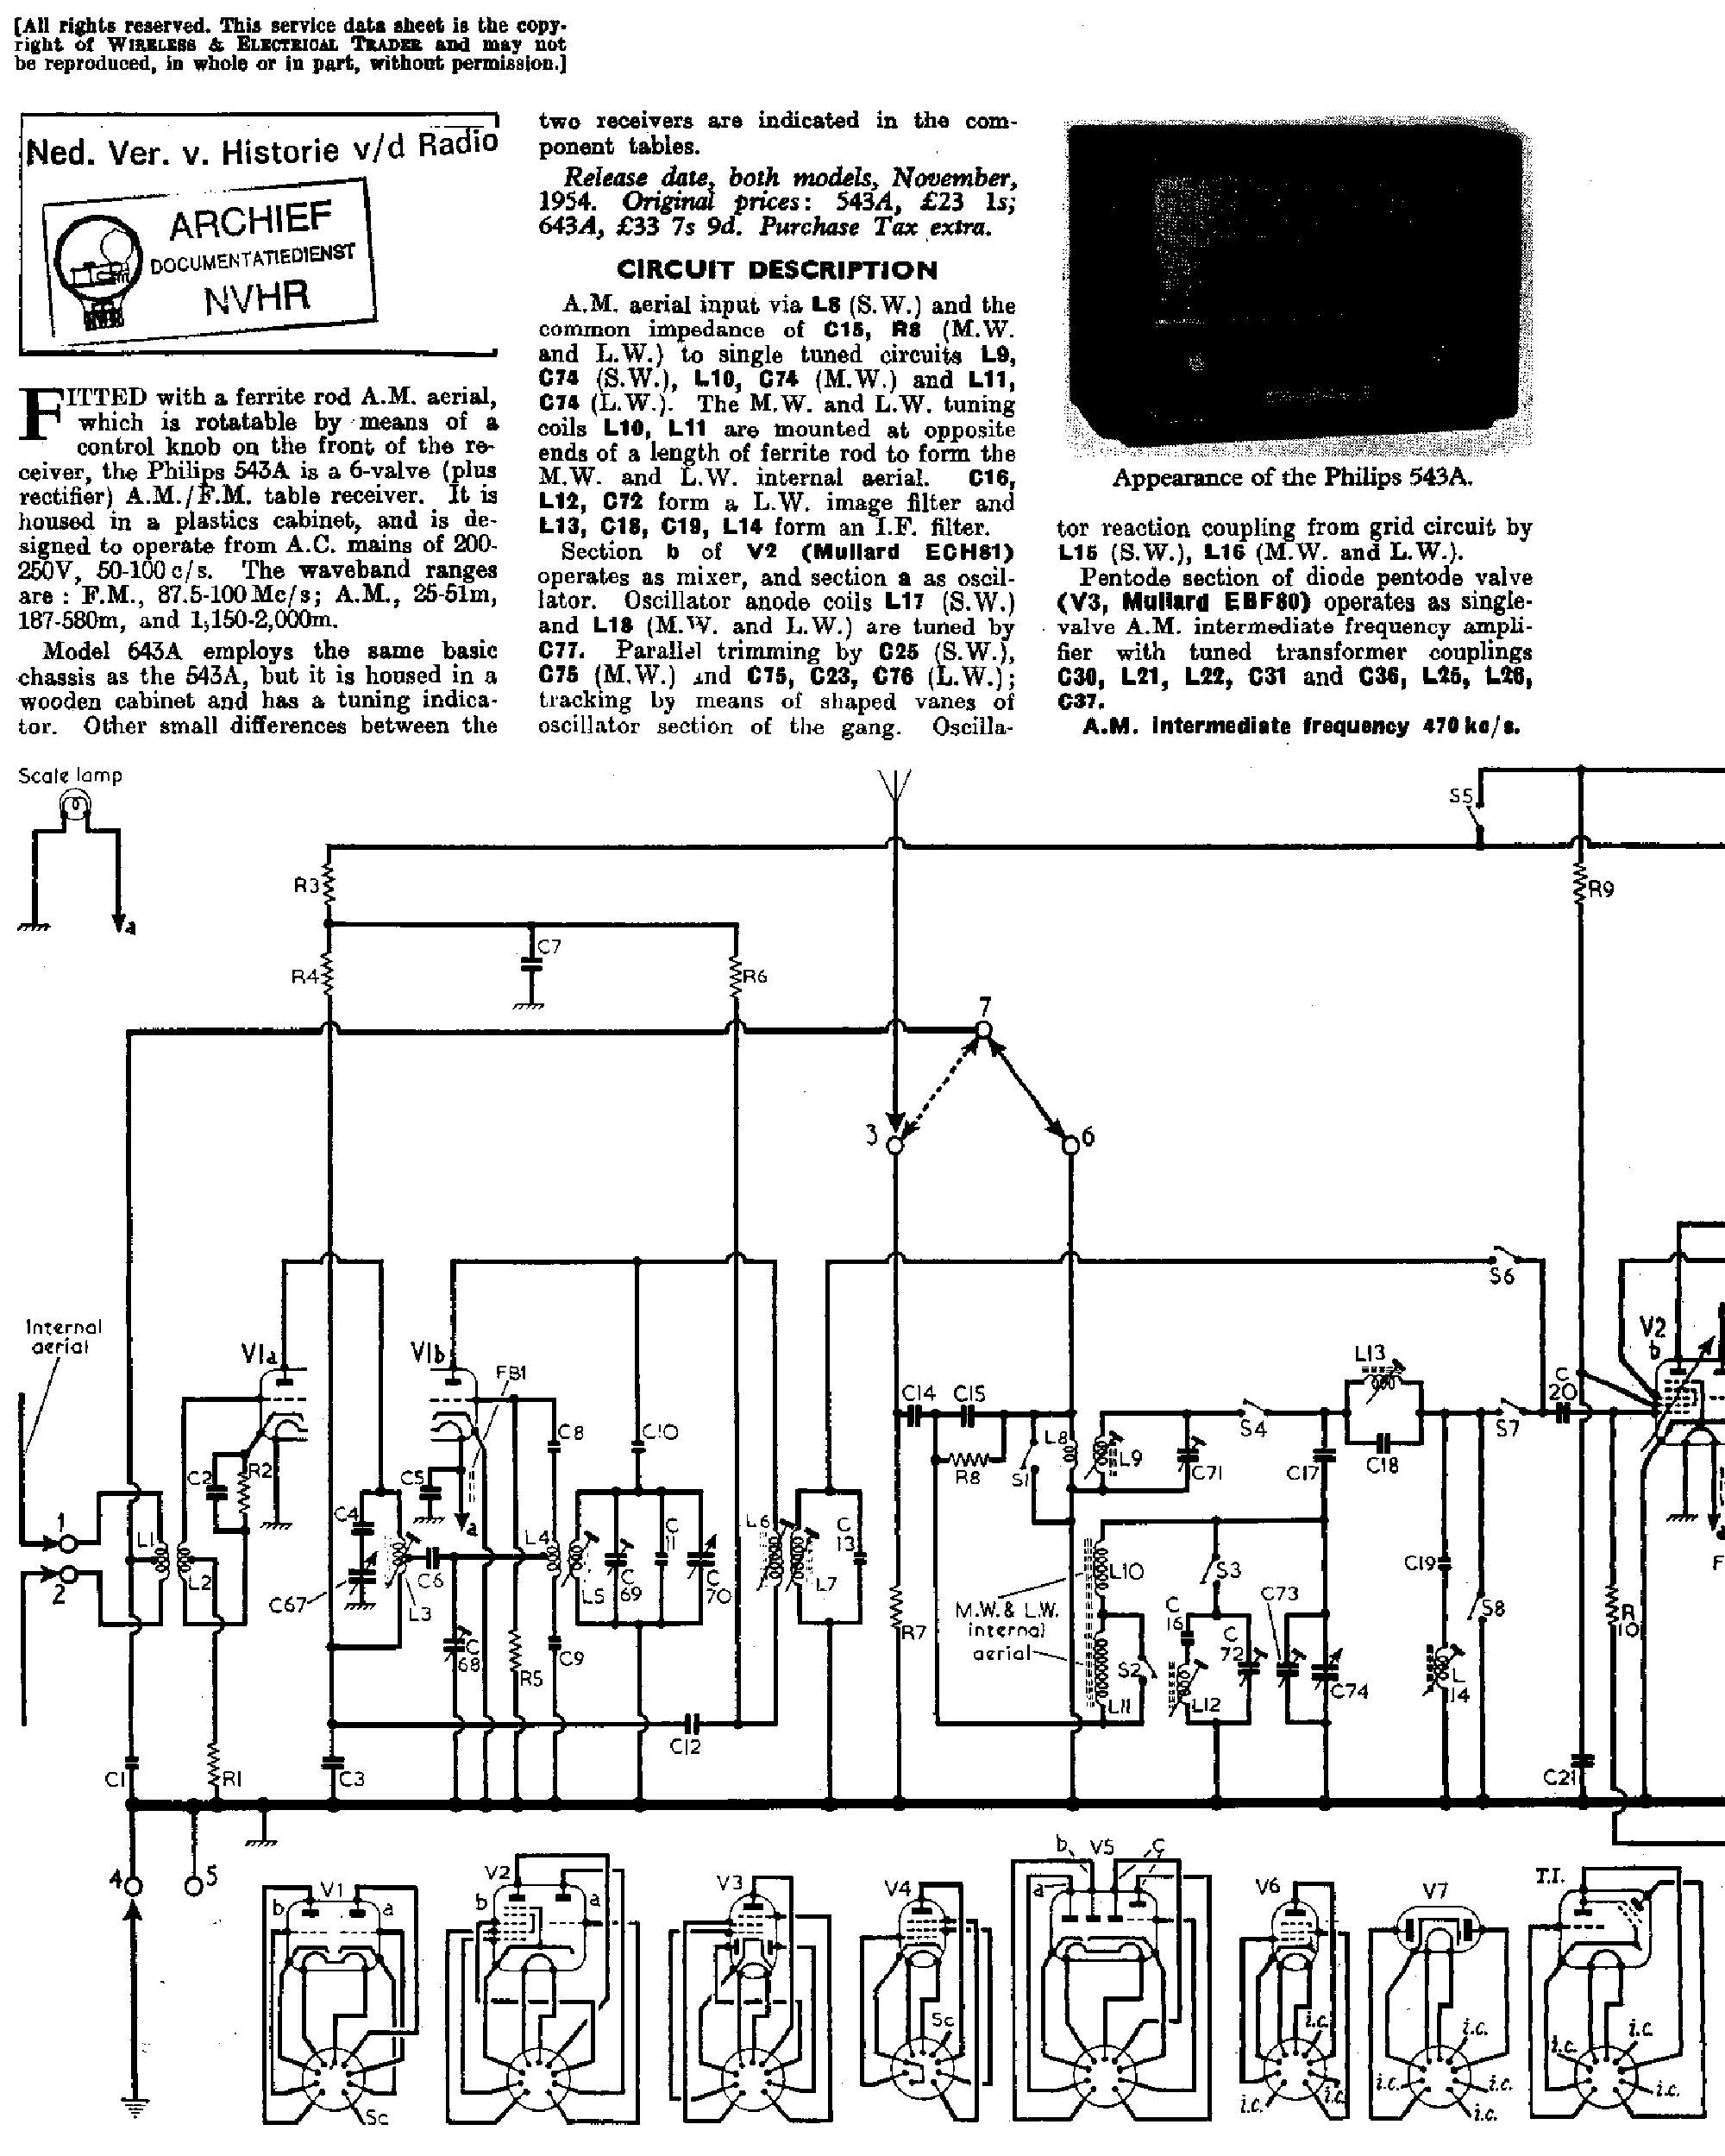 PHILIPS BG-543A 643A AM-FM RECEIVER 1955 SM Service Manual